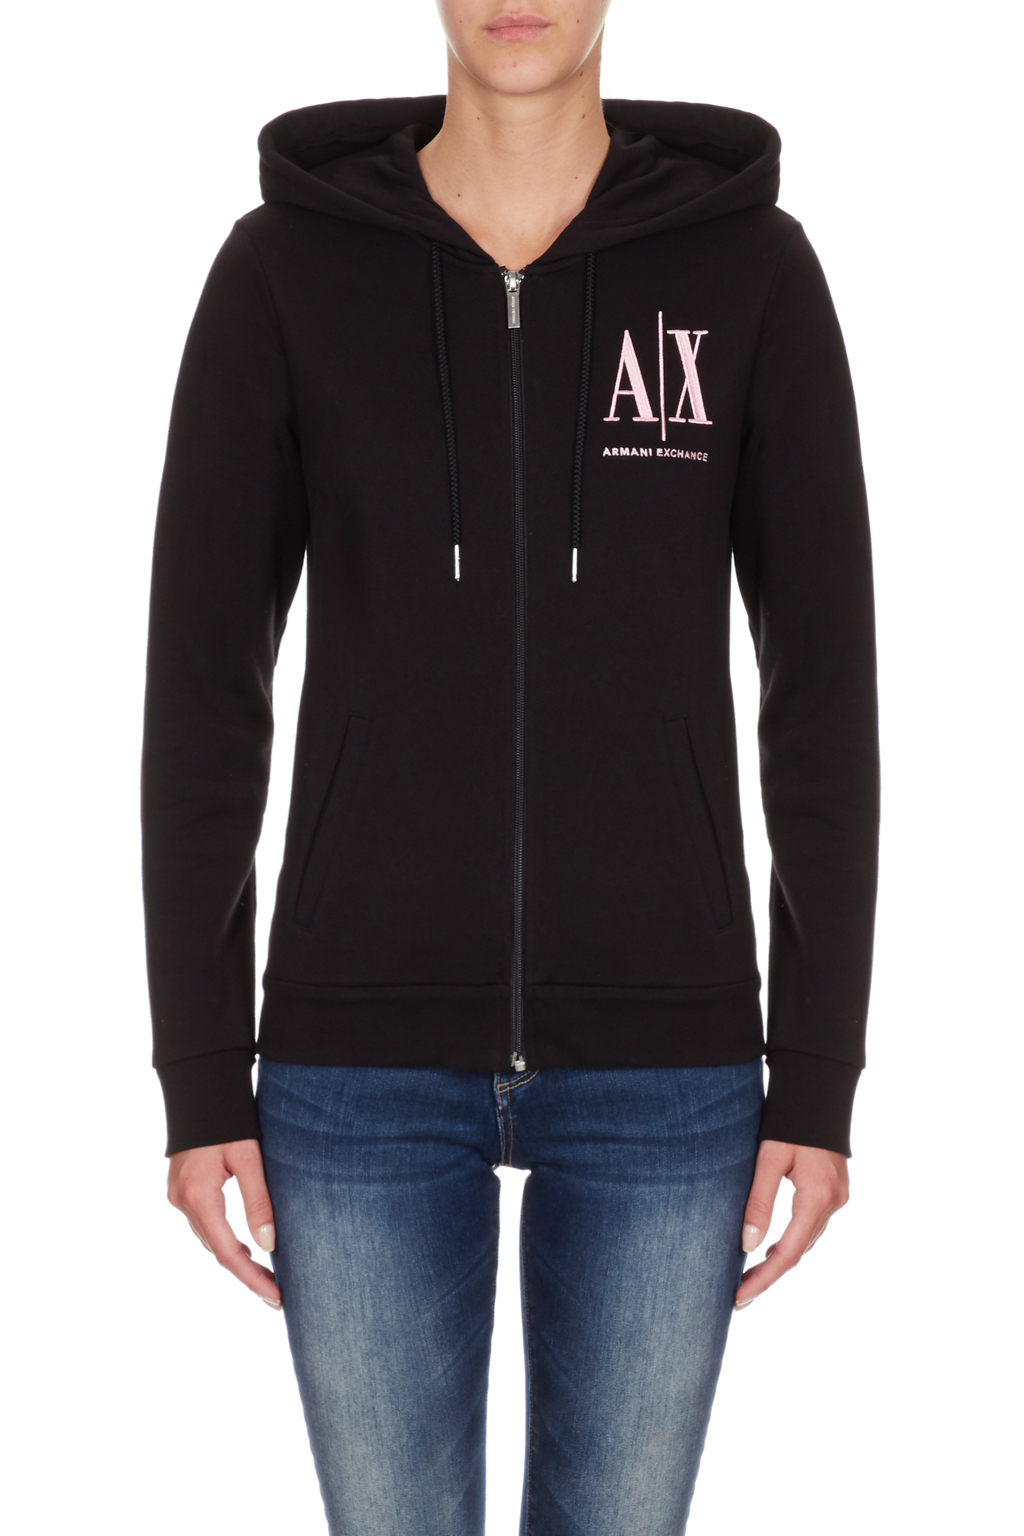 Felpa donna full zip e cappuccio ARMANI EXCHANGE icon A/X